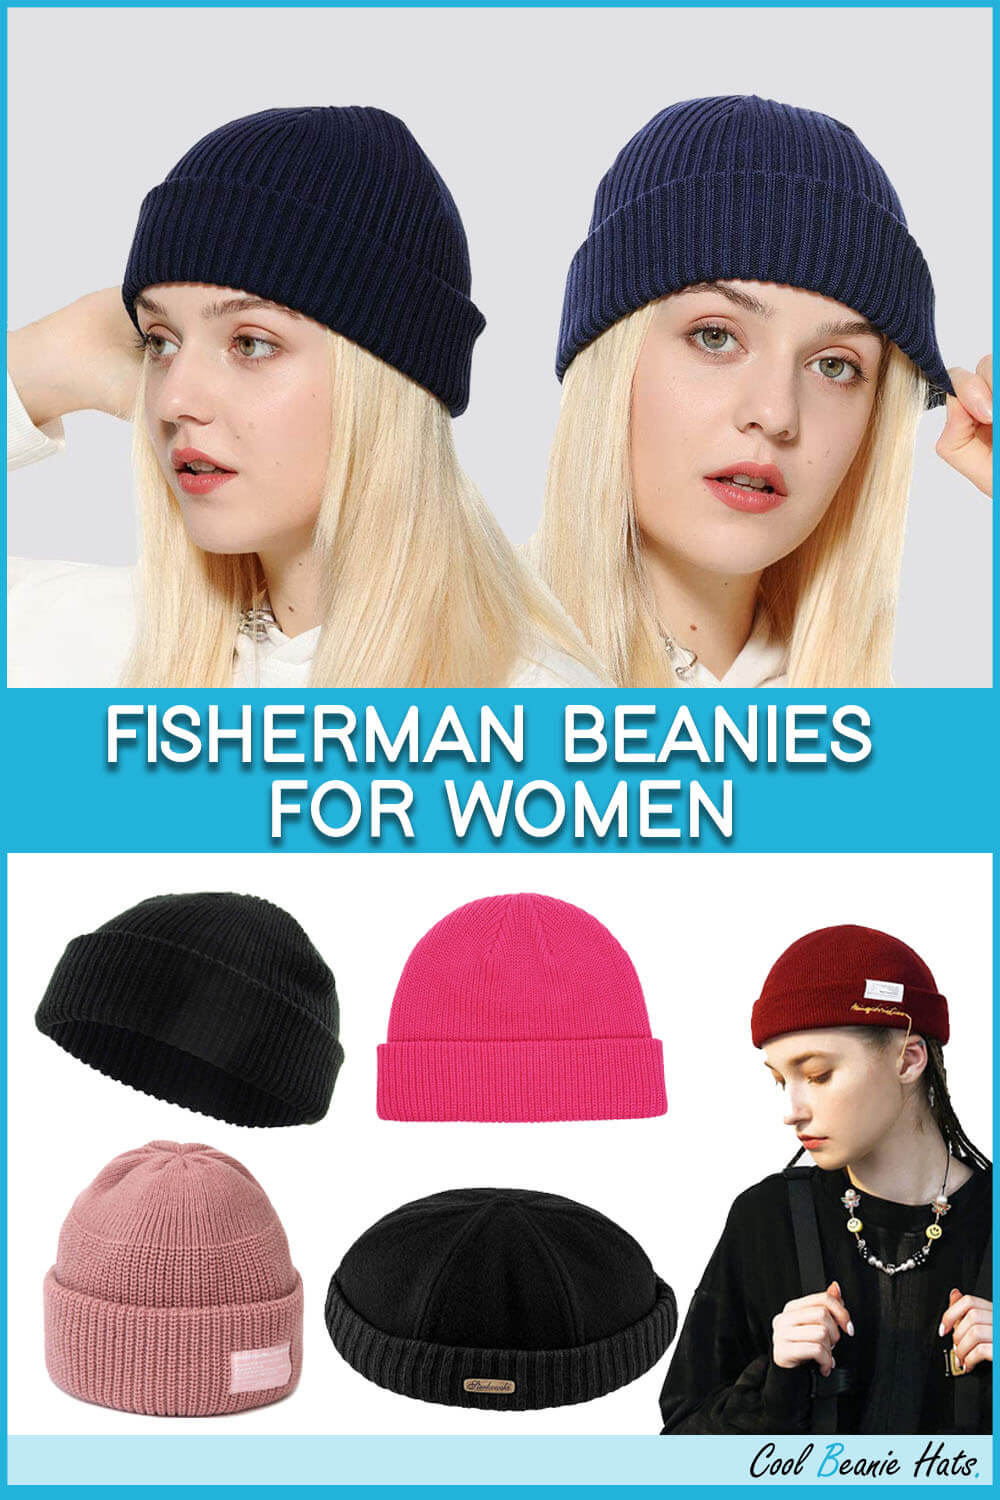 Fisherman Beanies for Women